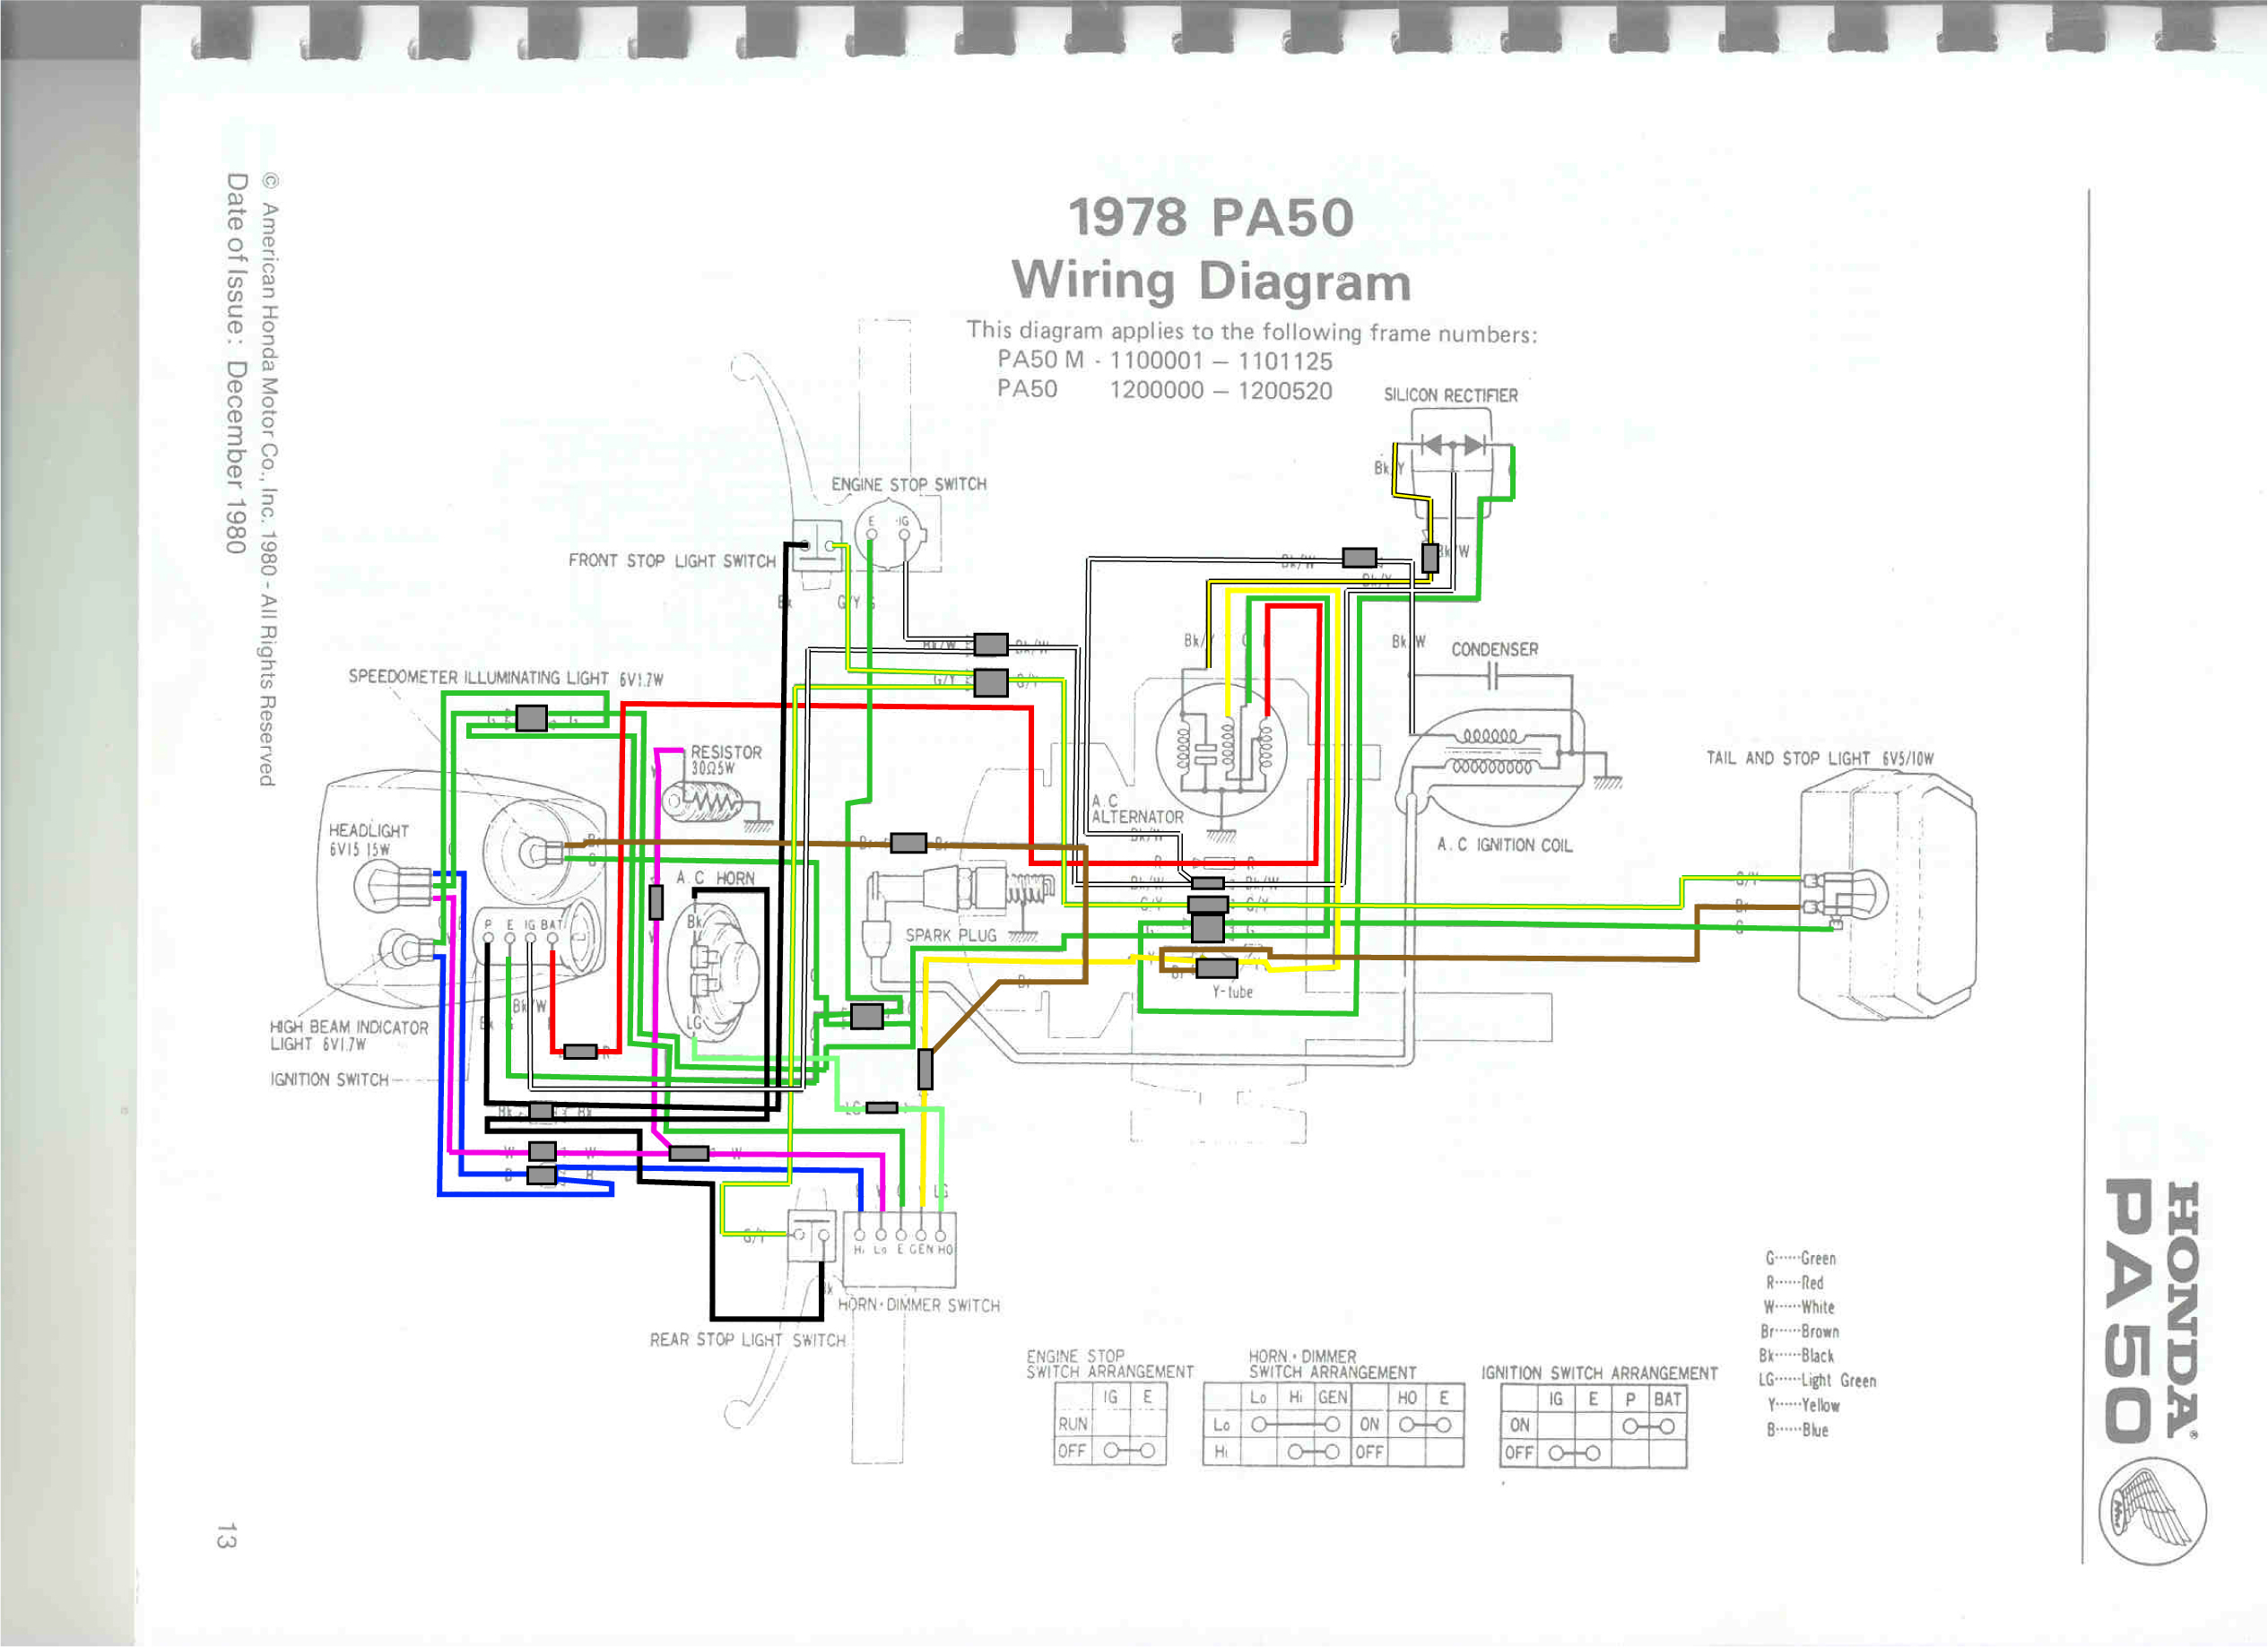 scooter cdi wiring diagram for half switched outlet honda hobbit moped get free